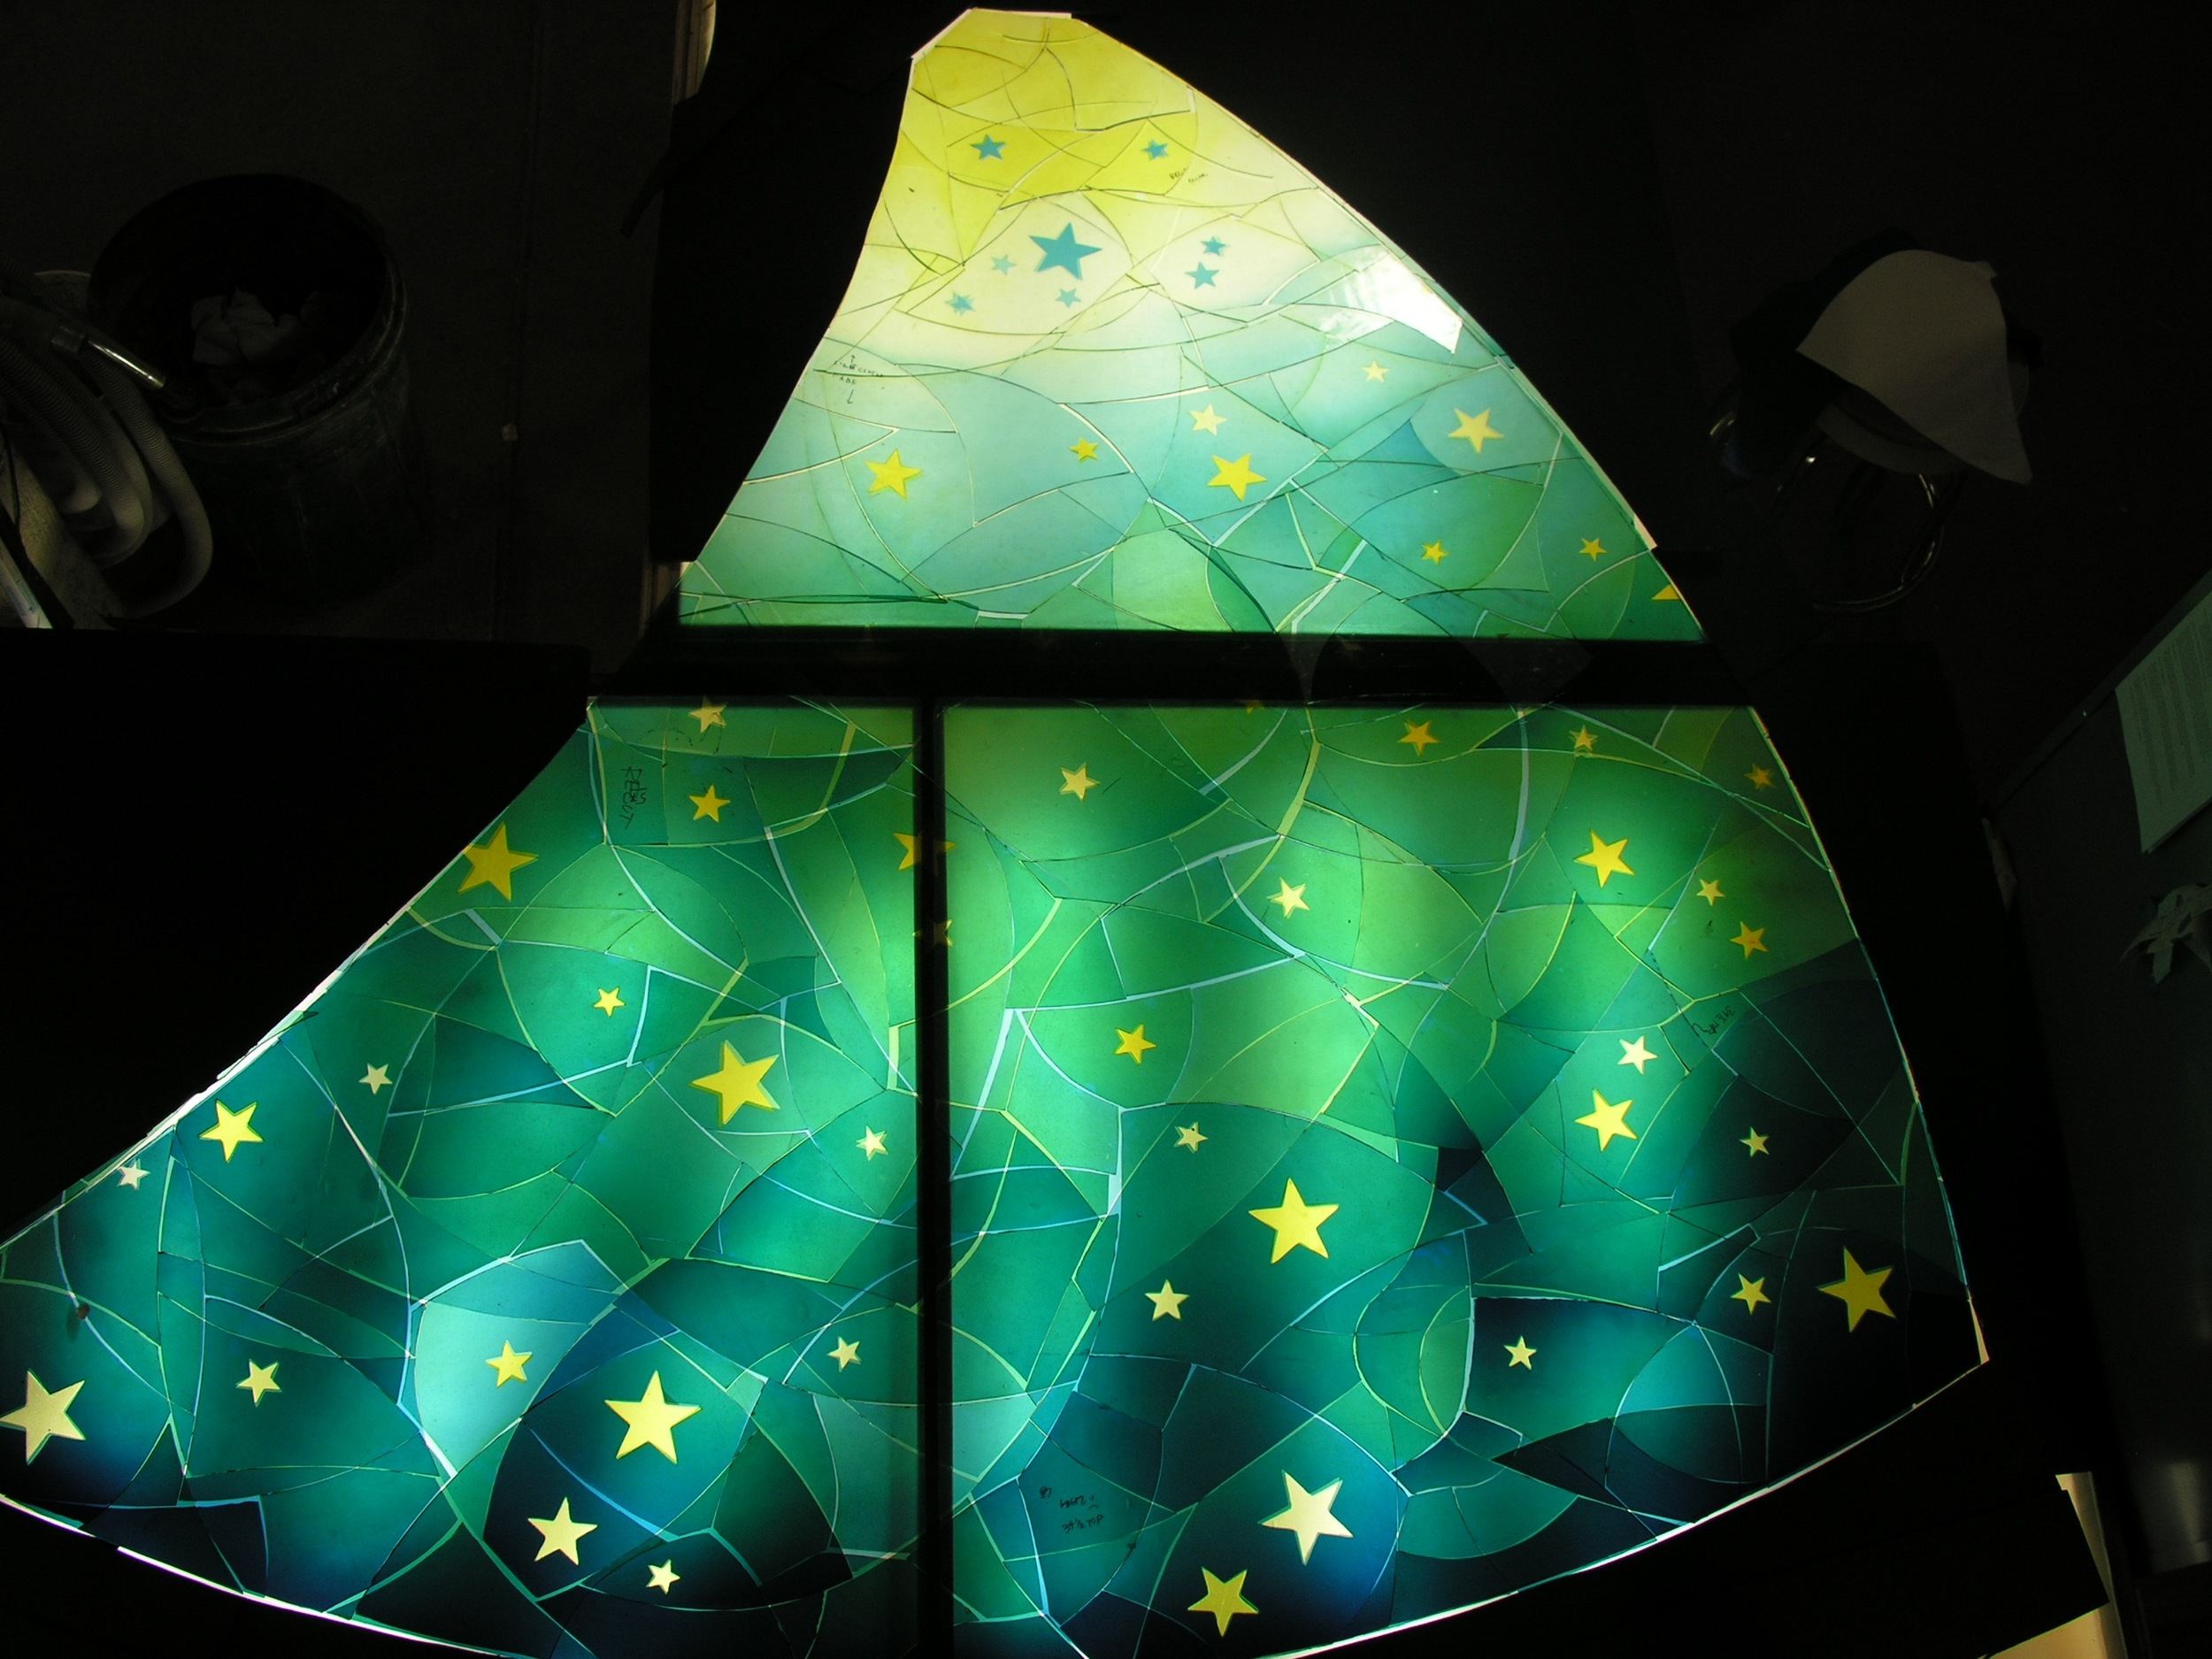 The stars are now etched out and pieces laid out on a table.  The is the finished Silver Stain, which you can see by the distinctive transparent yellow on top of the blue glass.